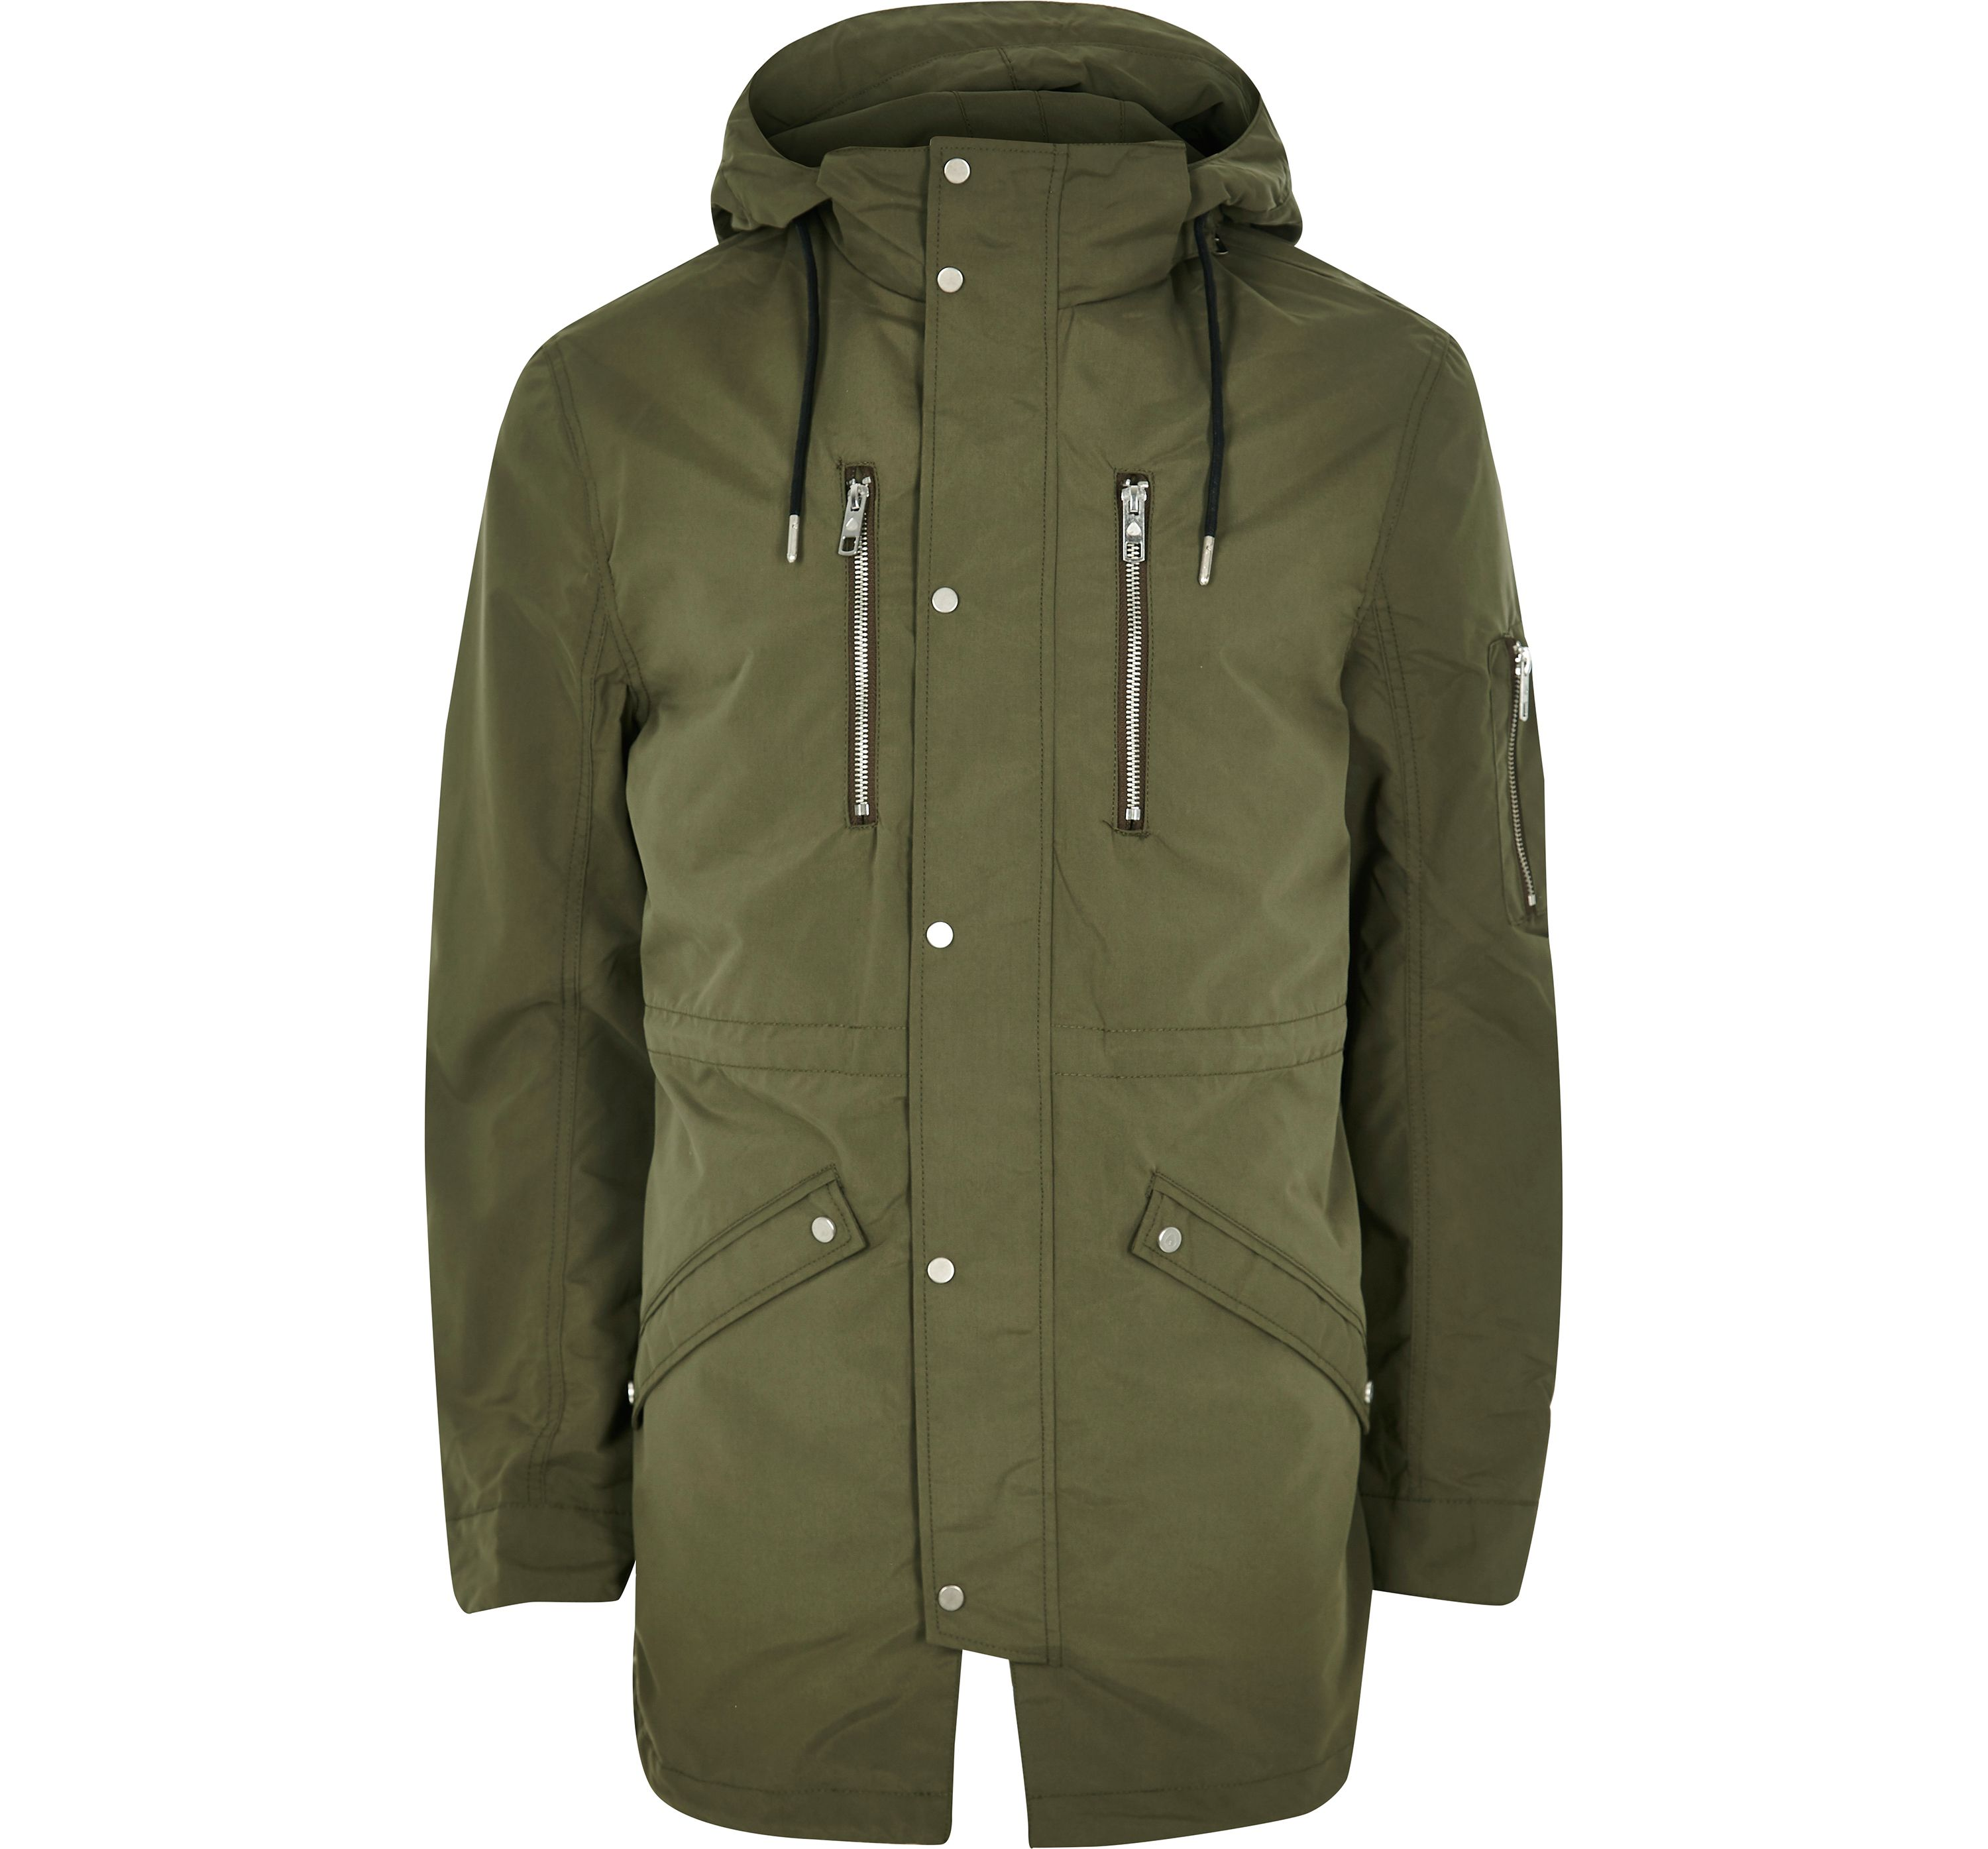 River Island Mens Only and Sons Khaki hooded parka jacket